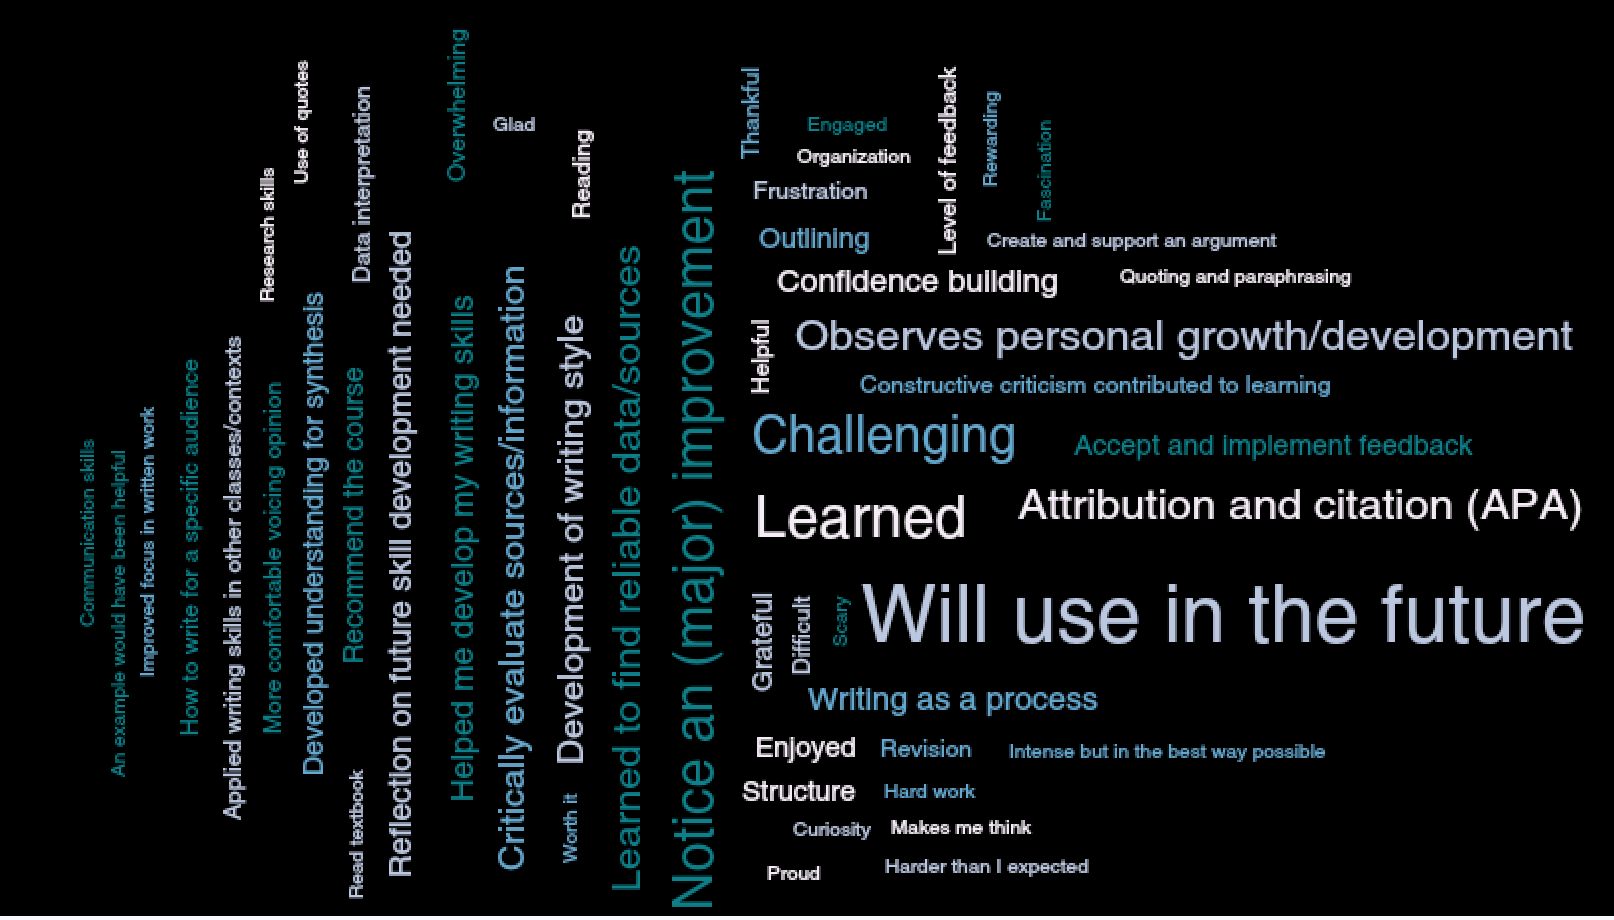 Figure 1: An image showing a word cloud based on the second round of data collection, with prominent themes represented with larger text. 'Will use in the future' is in the largest text, followed by 'learned,' 'challenging,' and 'notice a (major) improvement.' Other themes in smaller text are also noted.